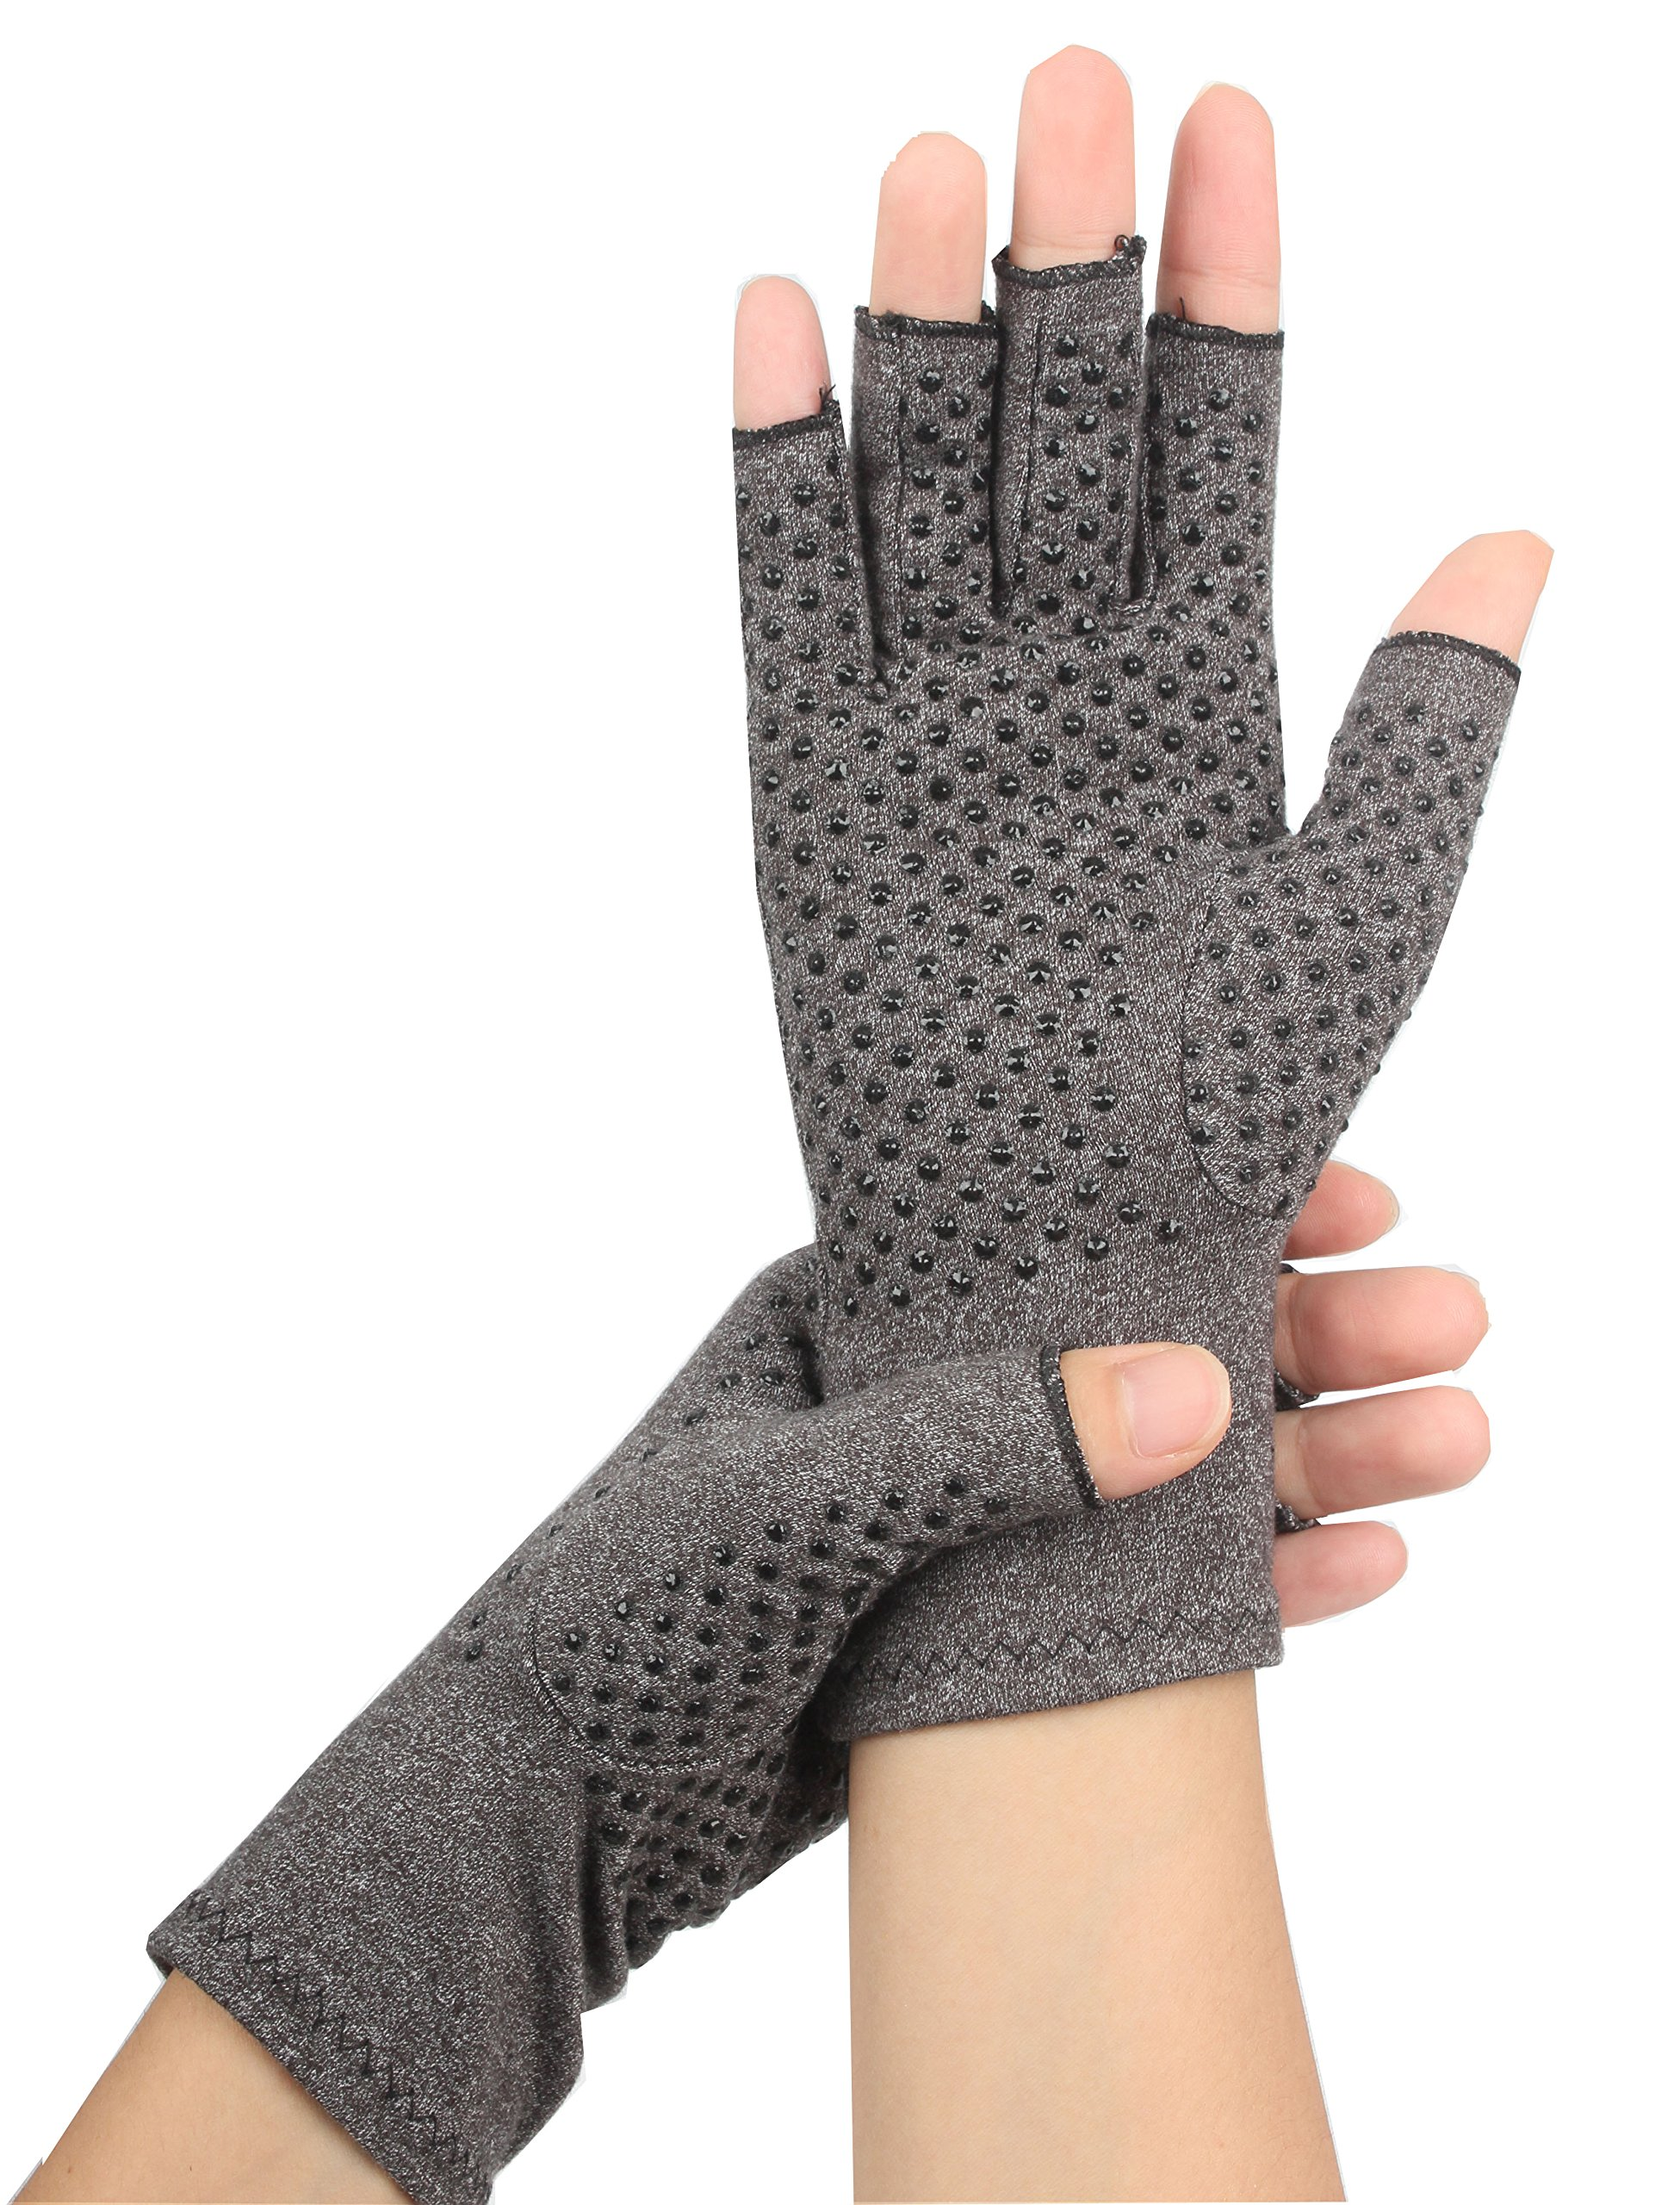 Arthritis Dispensin Gloves by Global Epworth - Compression Gloves for Rheumatoid & Osteoarthritis - Hand Gloves Provide Arthritic Joint Pain Symptom Relief - Men & Women - Open Finger(large)